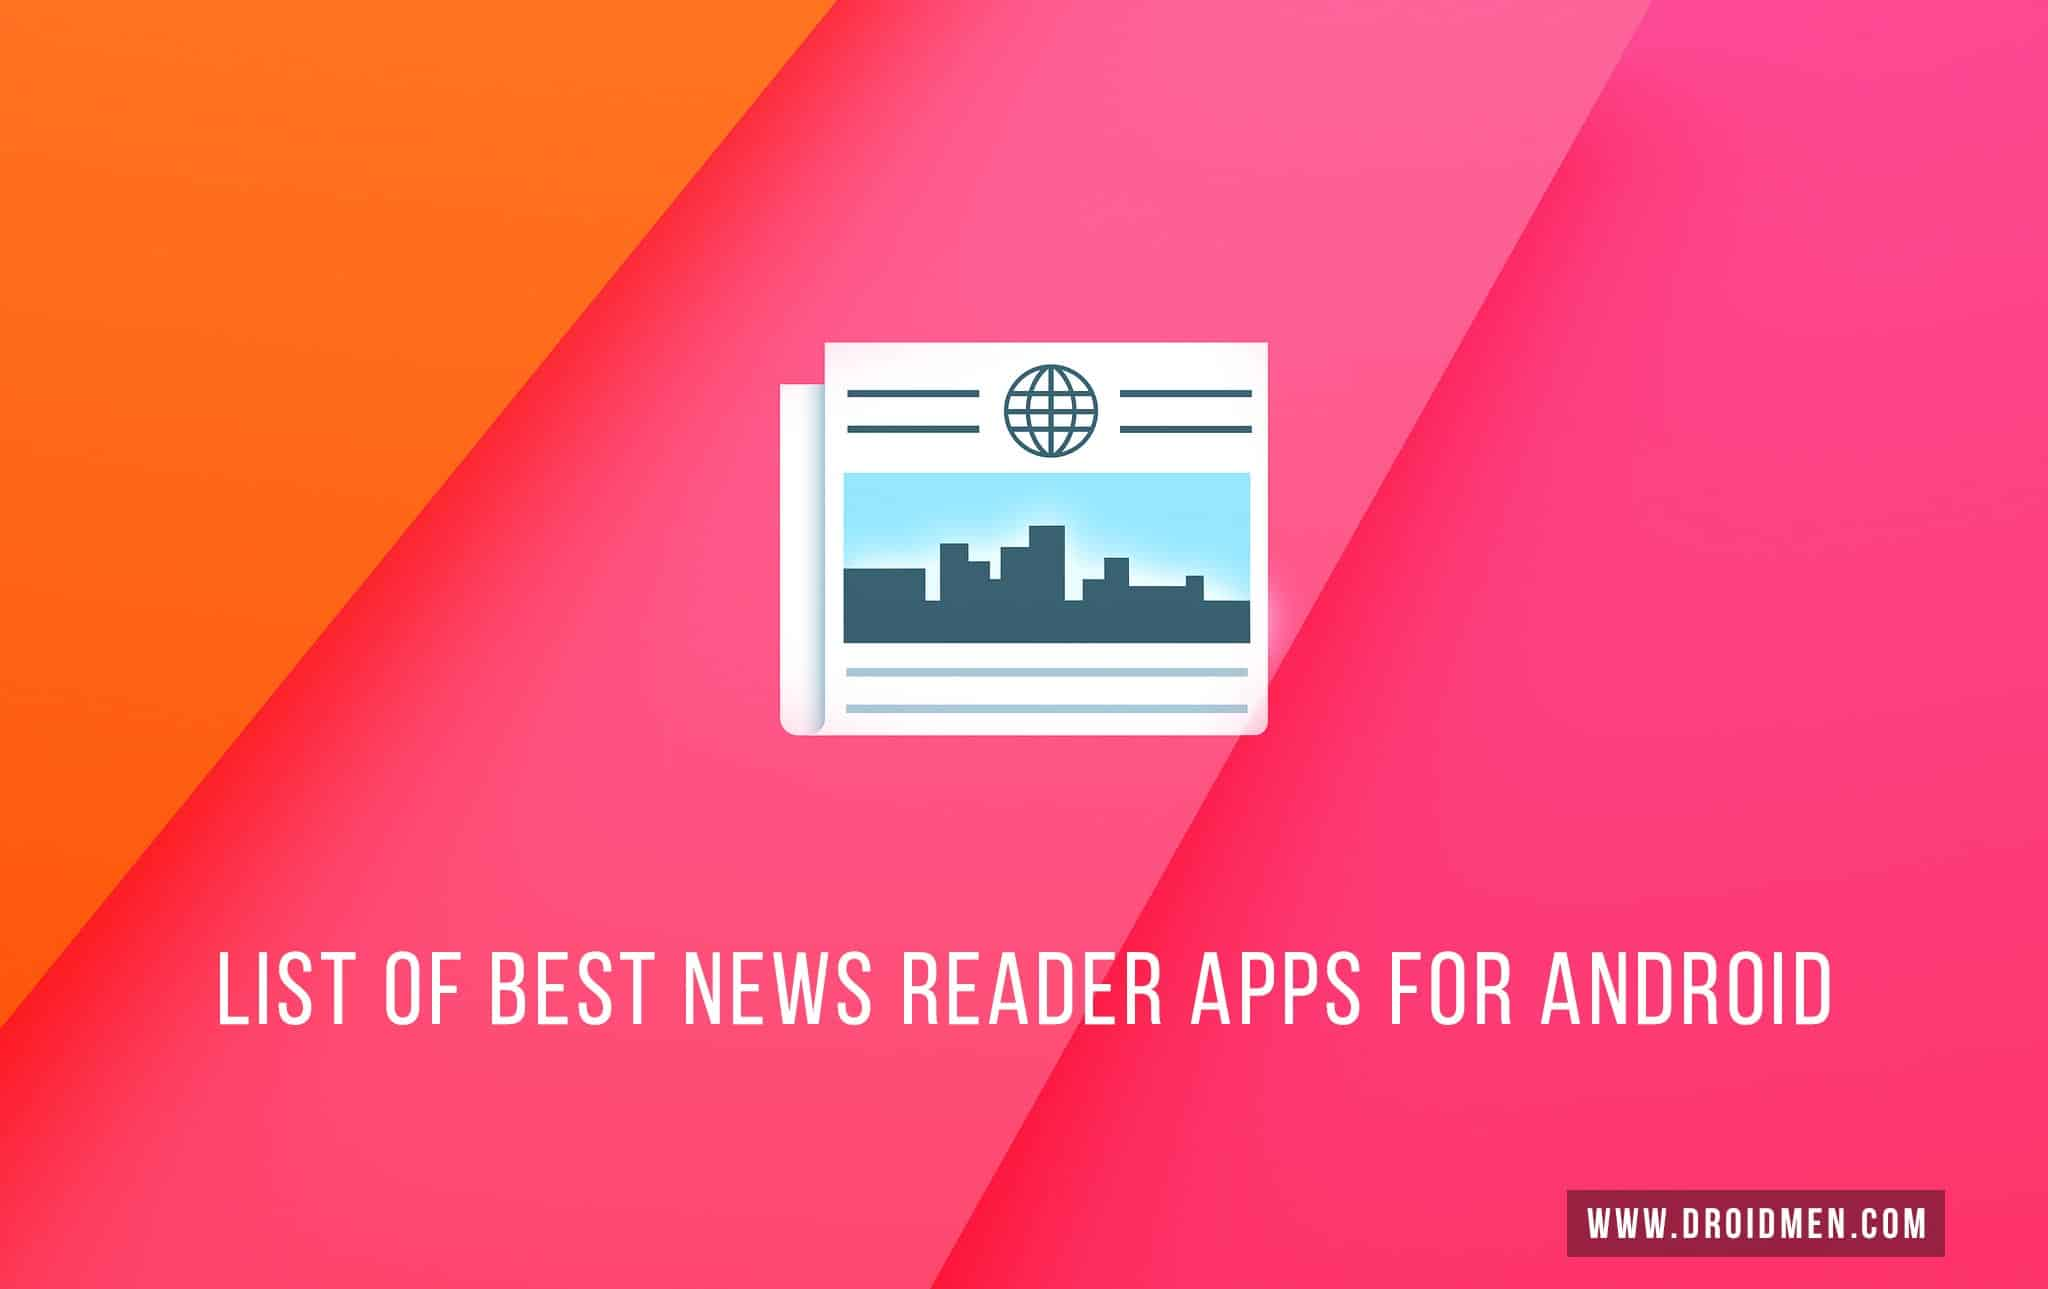 Best News Reader Apps